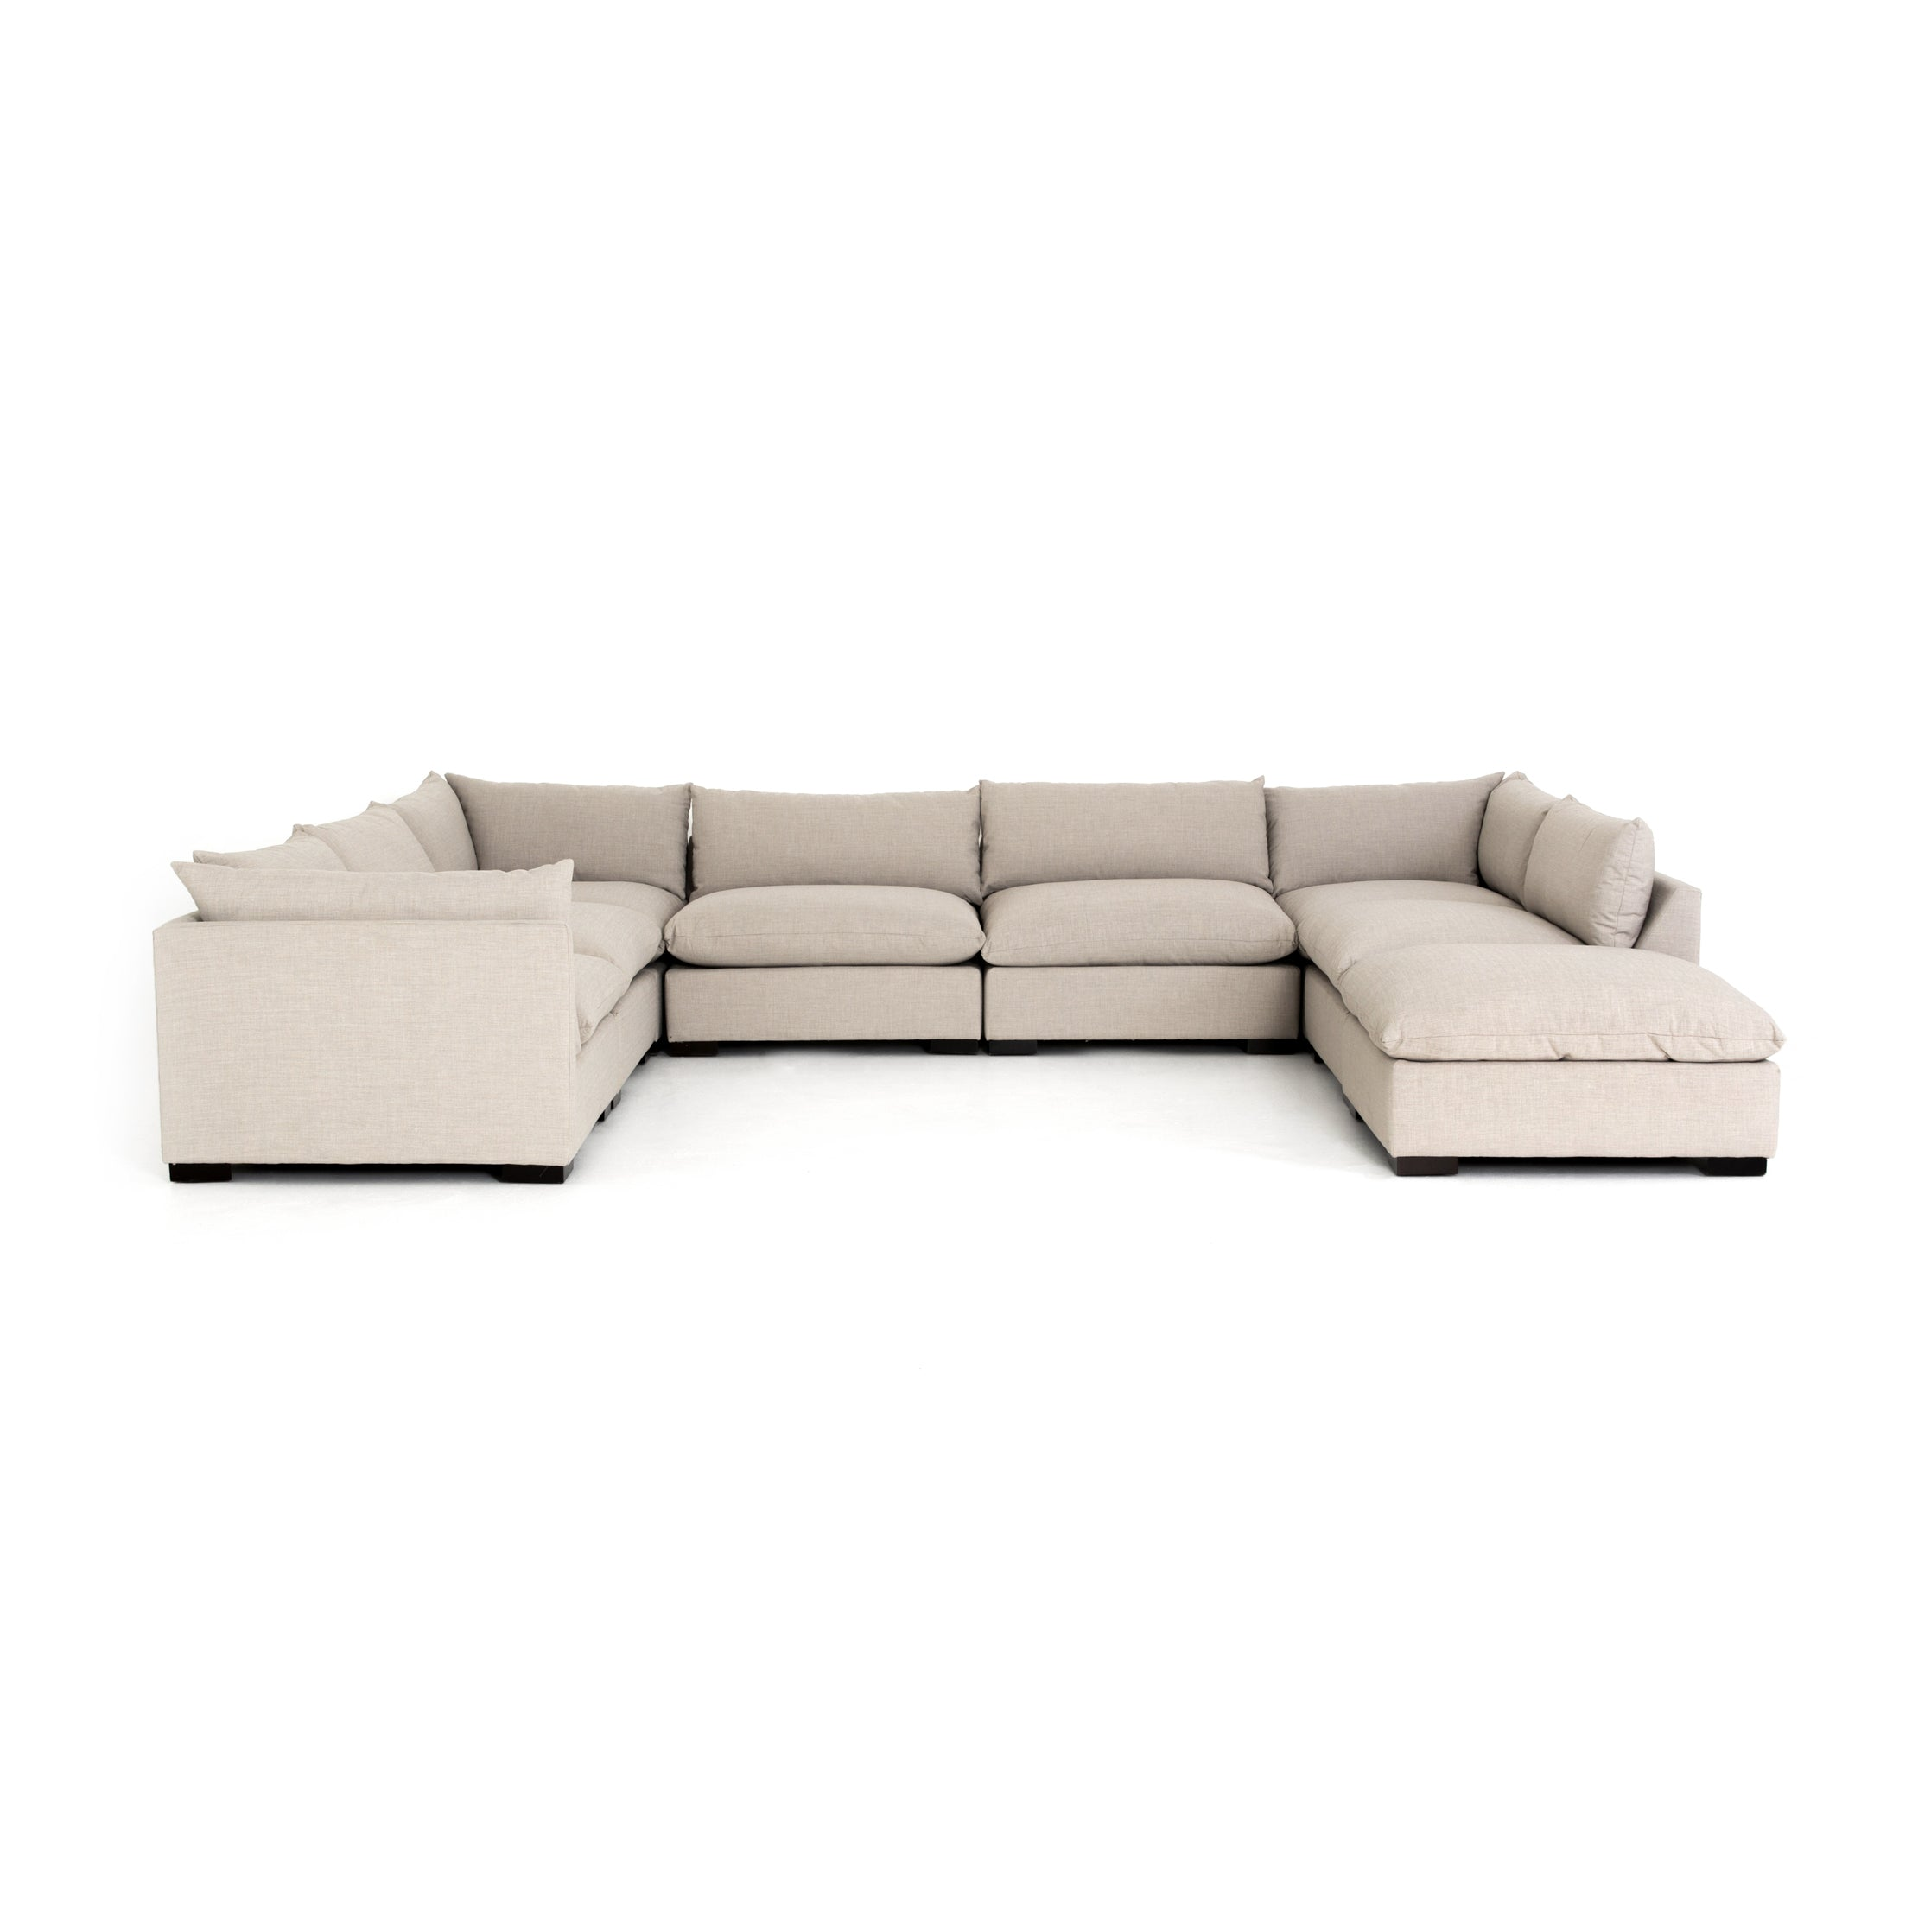 Westwood 7-Pc Sectional W/ Ottoman-Bm